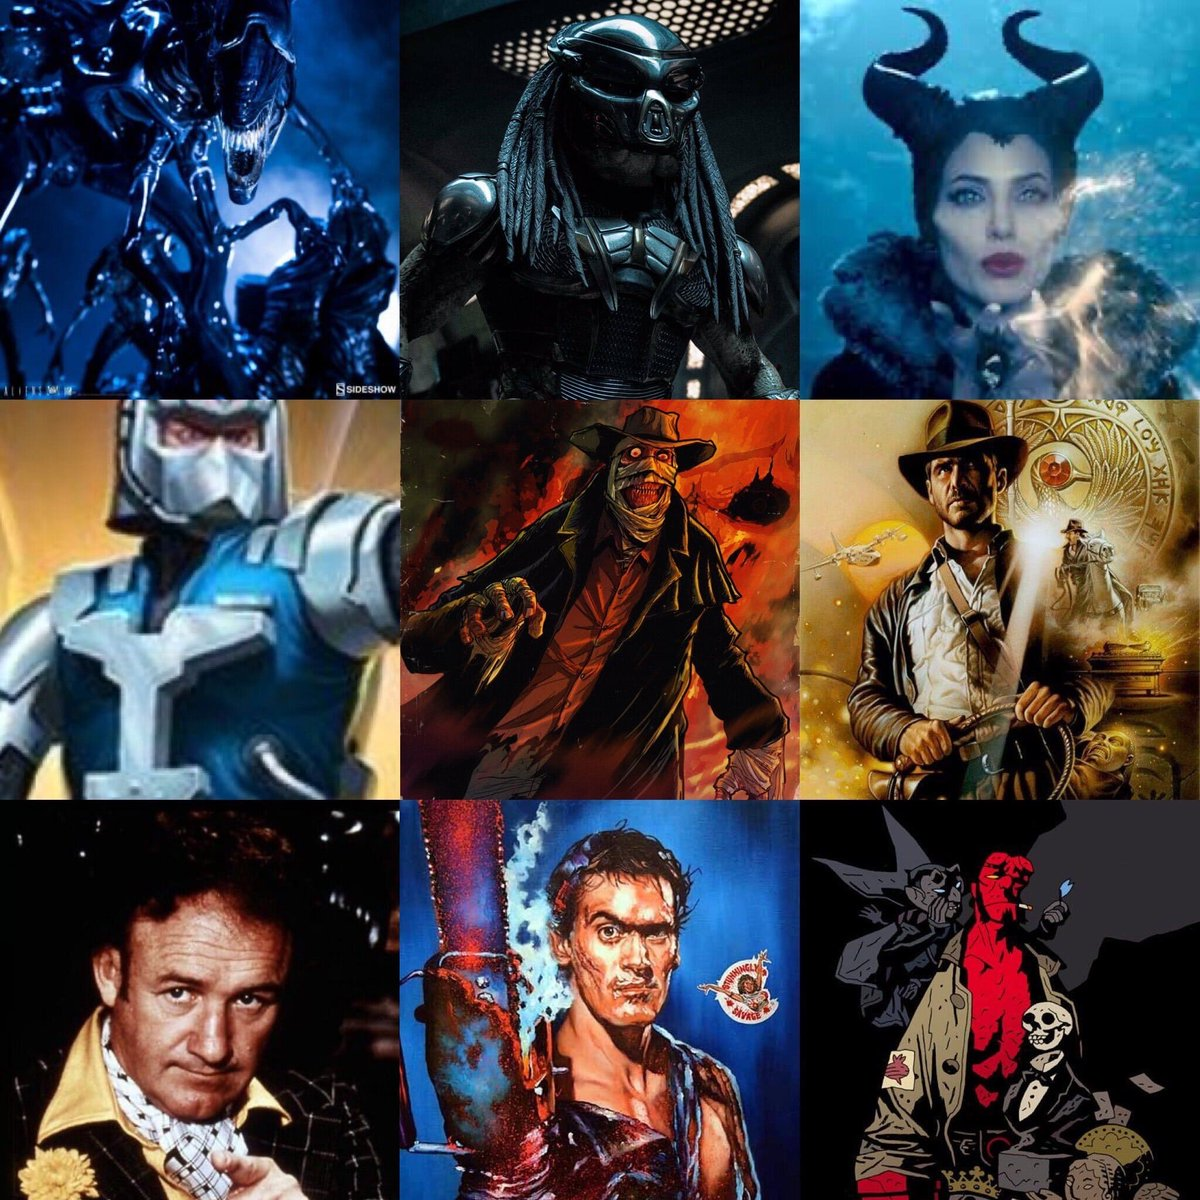 The Hive  (#LegacyTales Epic #fanfiction #comicbook style tale #horrotica #predators #aliens #indianajones #hellboy #darkman #evildead #residentevil #horrorfamily #fanfiction #AVP) Please read all replies for the best experience. COMPLETE STORY ATTACHED https://t.co/pH6j1QTTqW